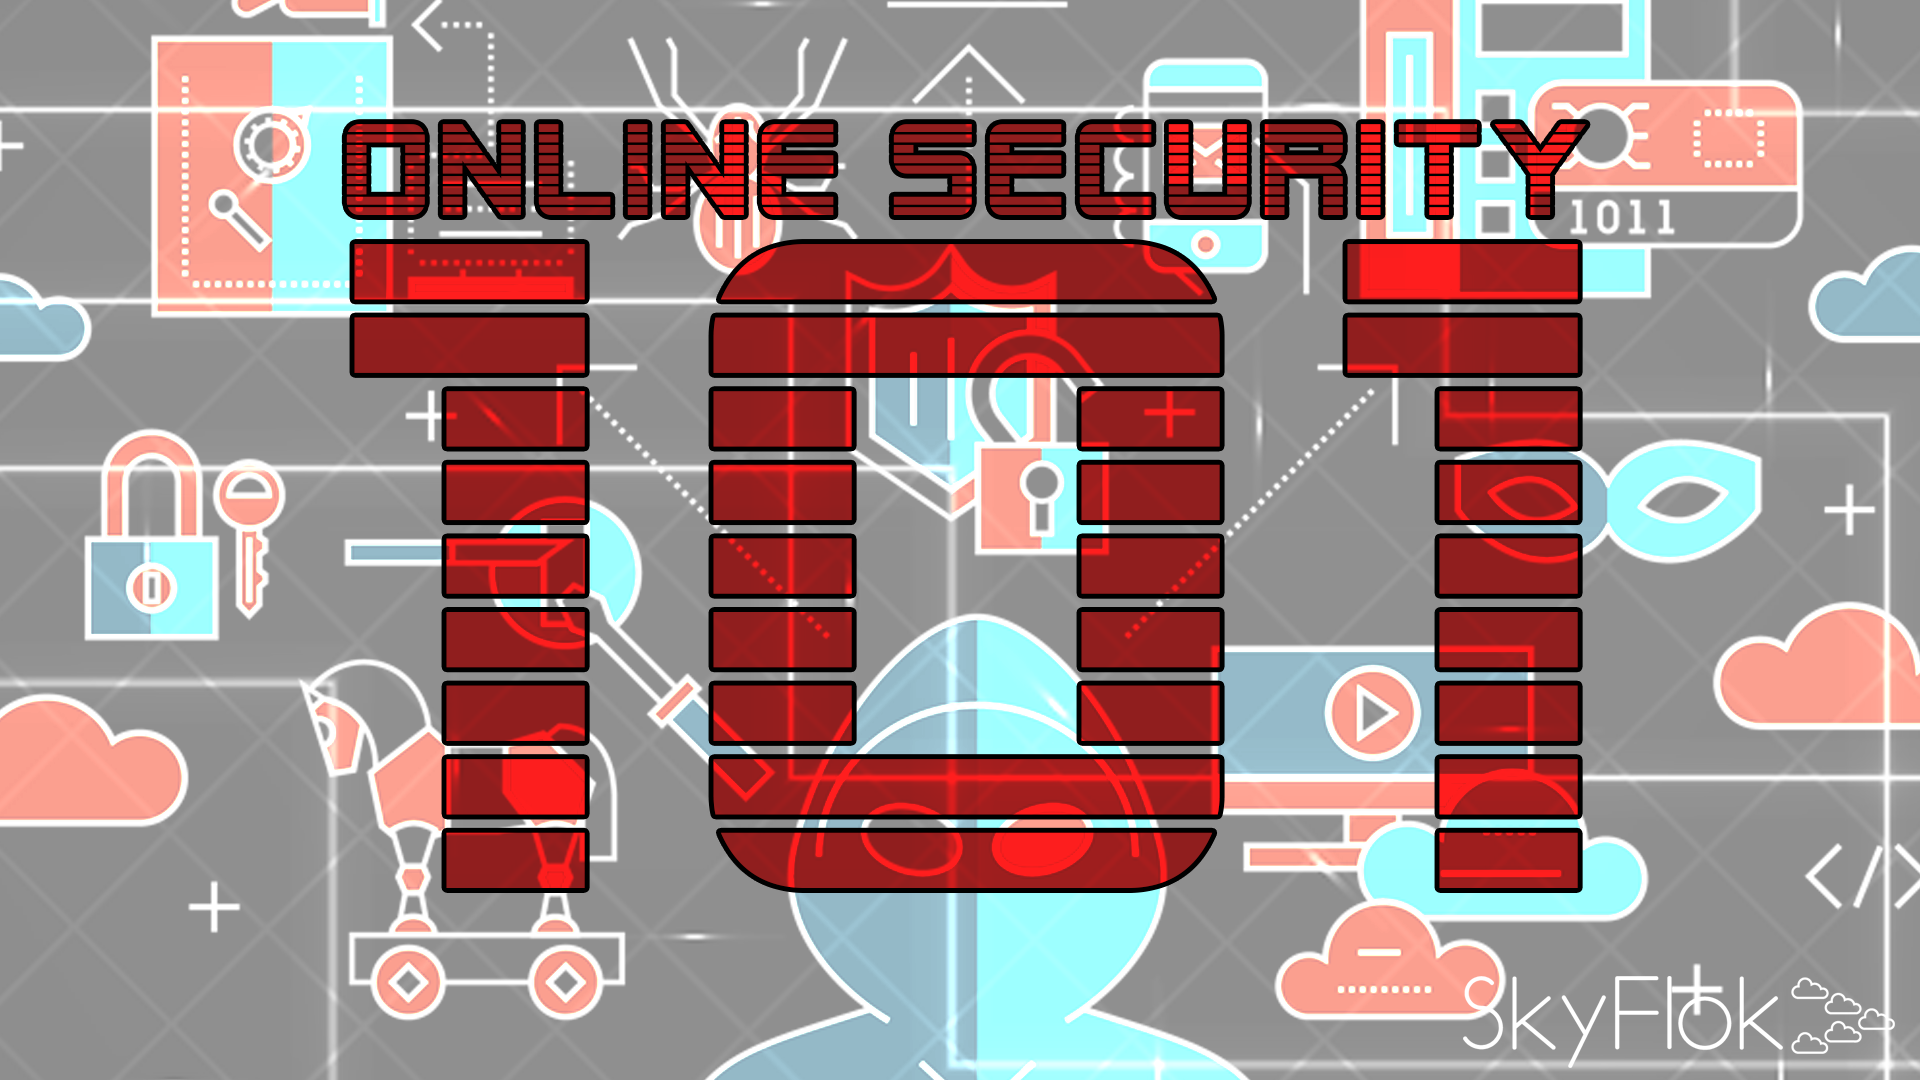 Online security 101: Tips for protecting your privacy from hackers and spies